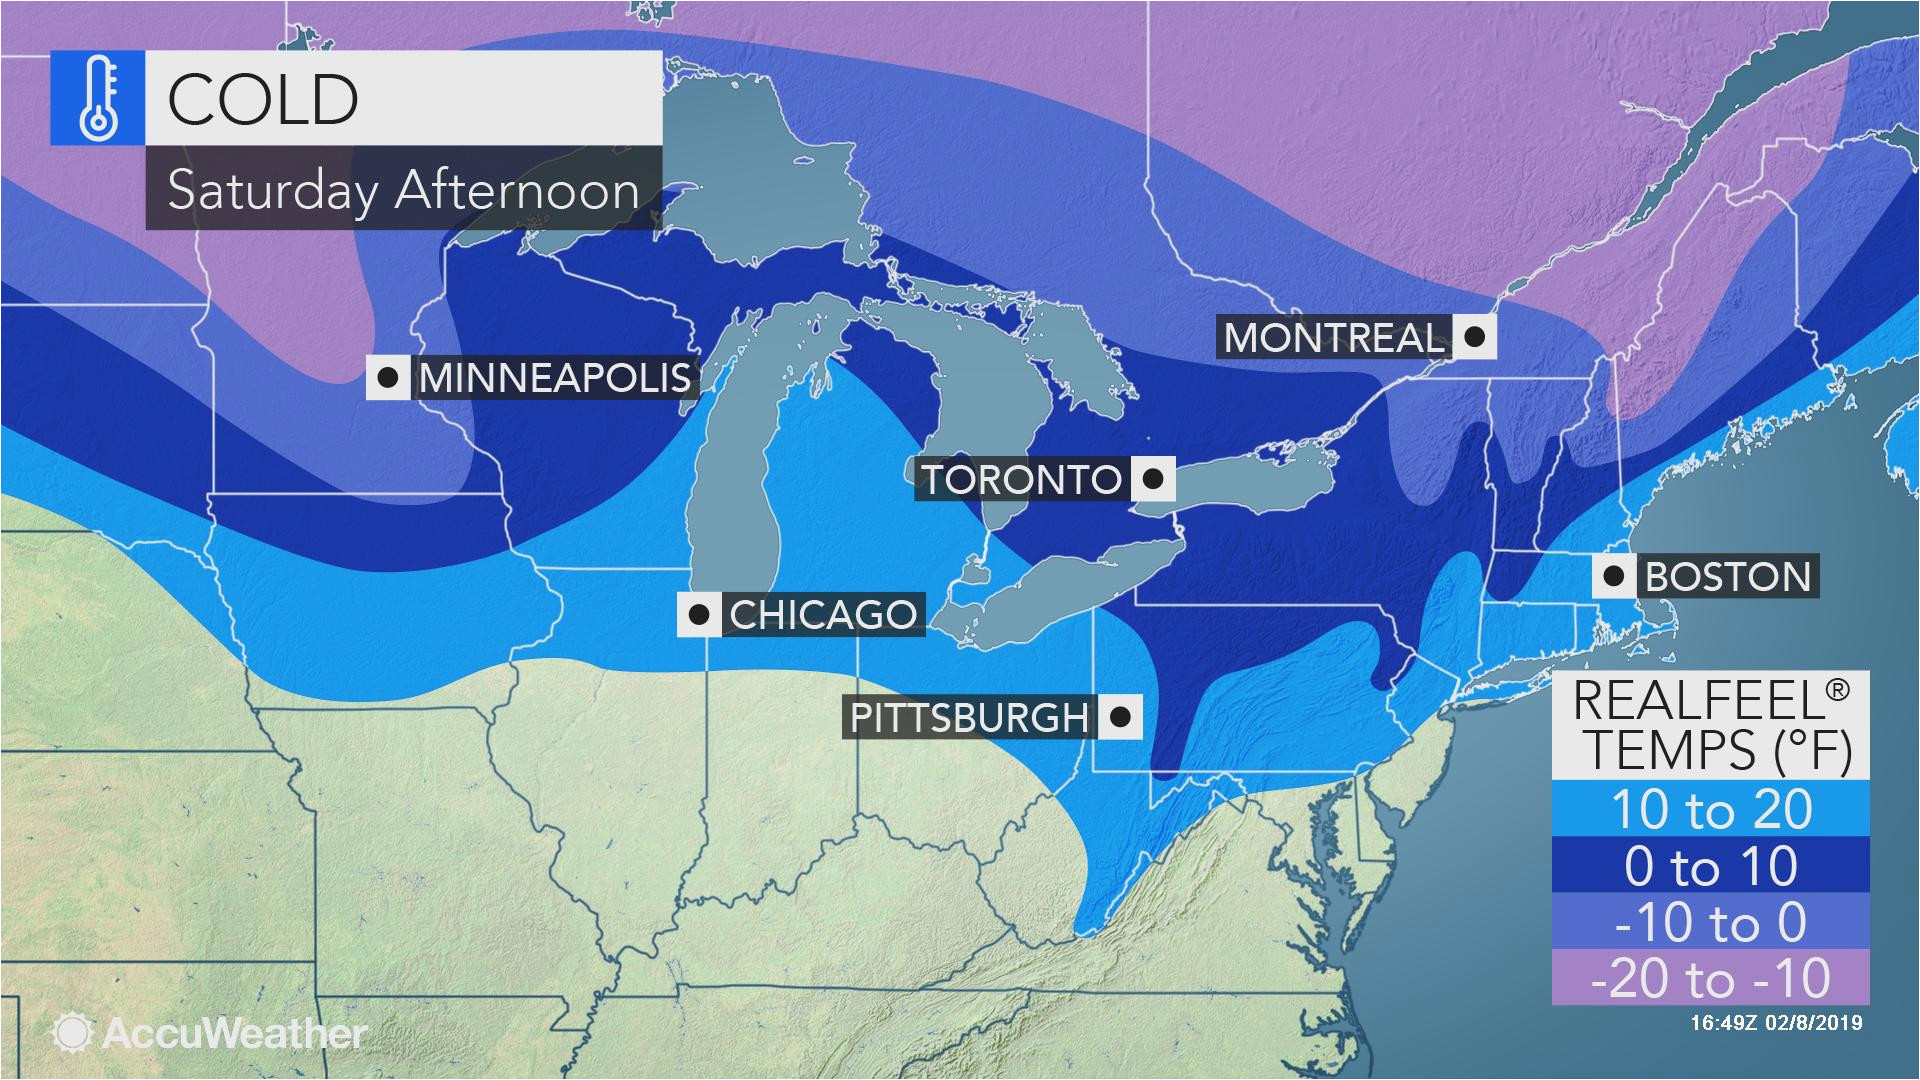 cold blustery weather to spread over northeastern us through saturday